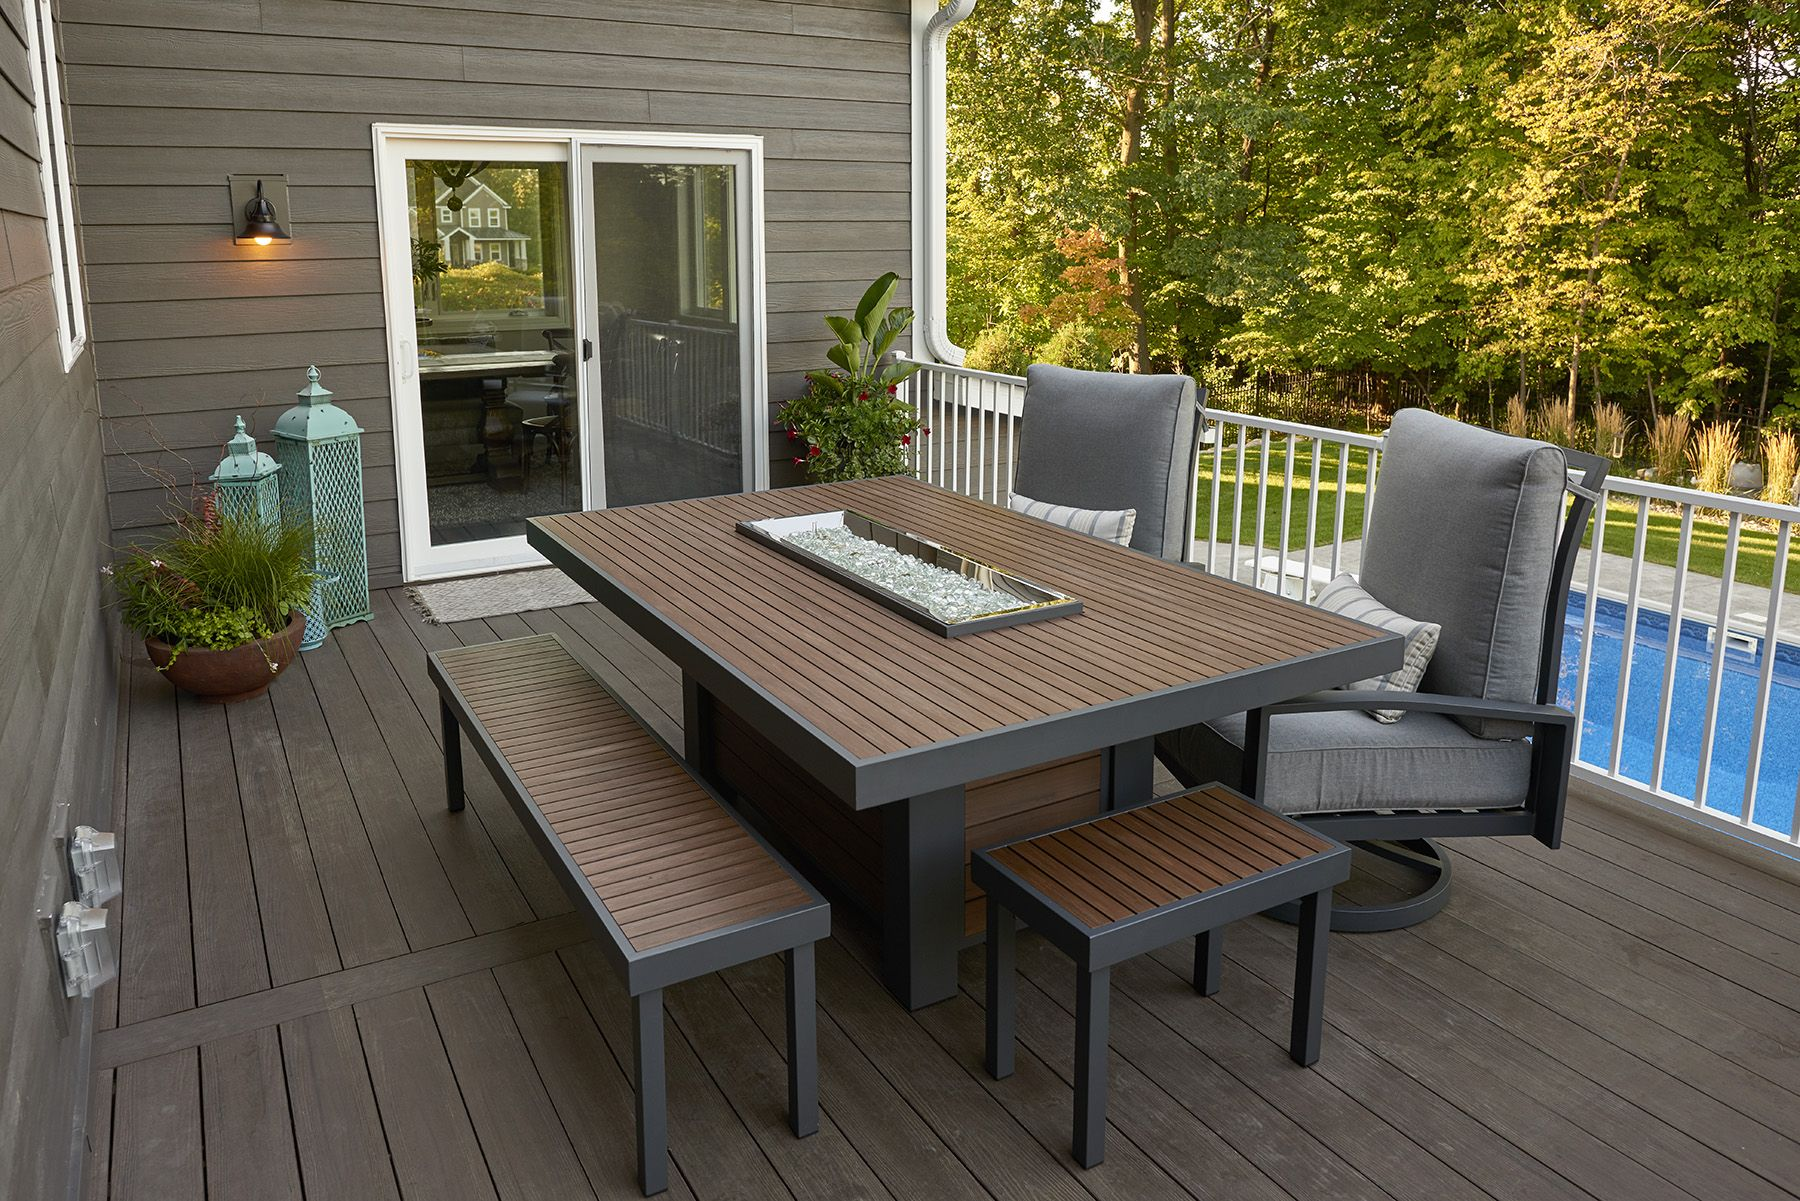 Kenwood Fire Pit Dining Table Features Durable Brown Composite